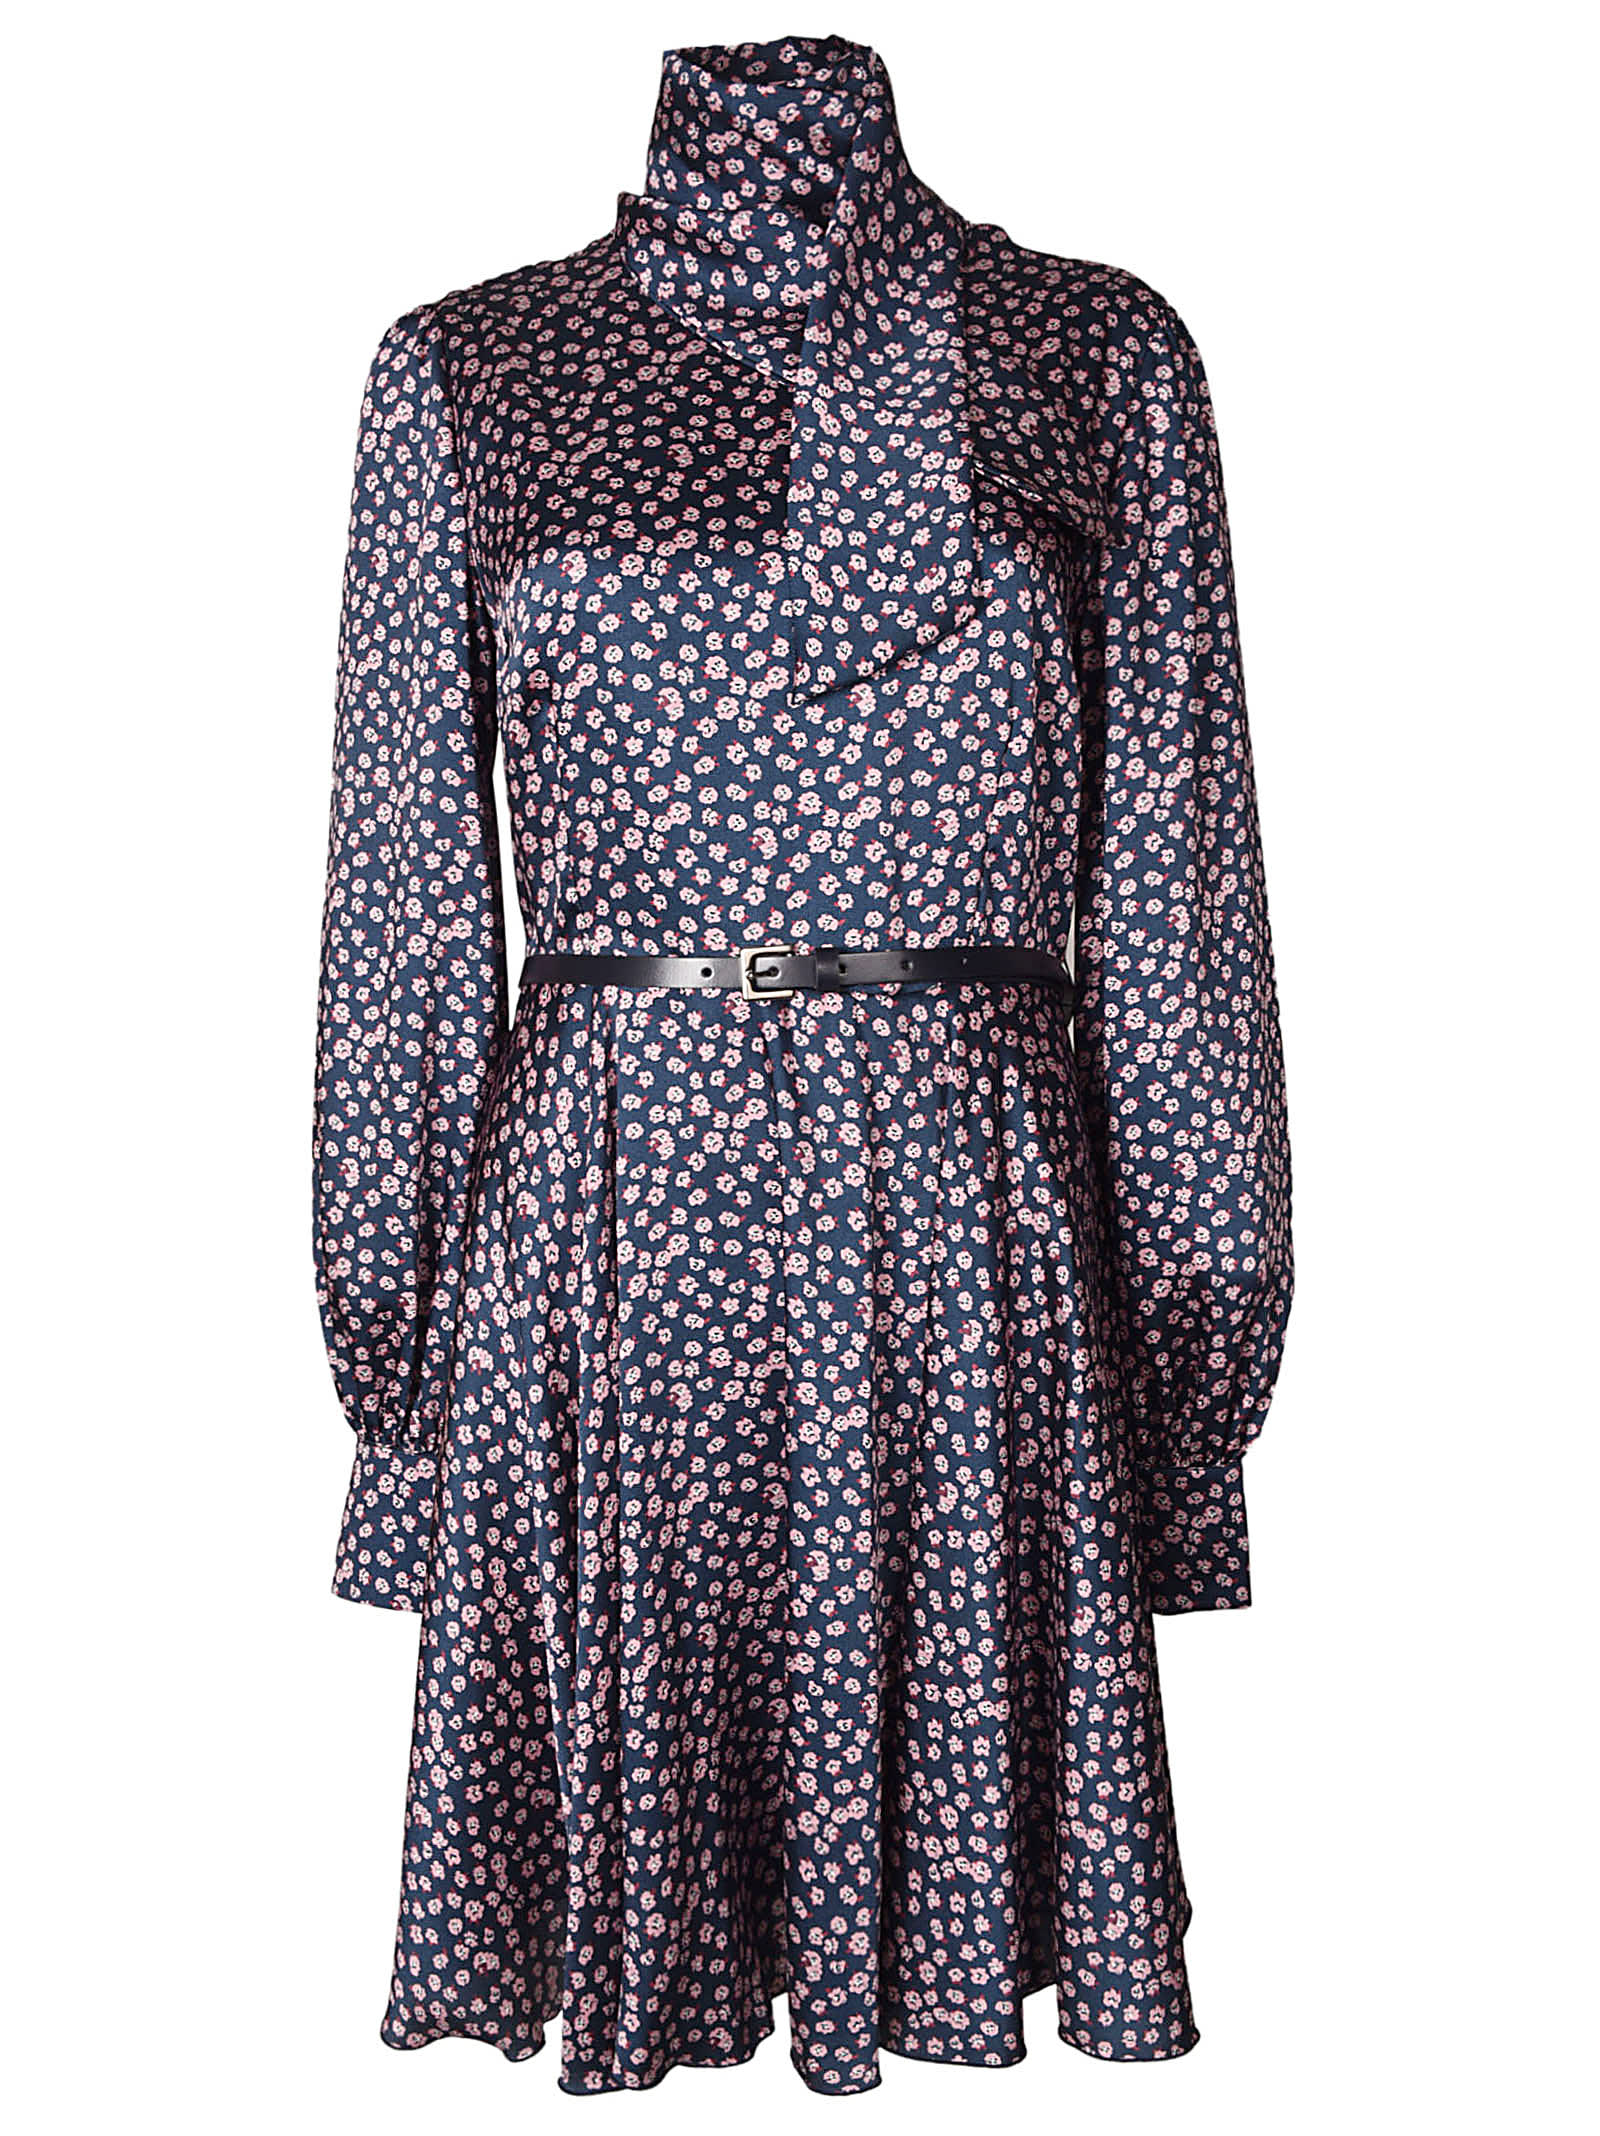 Ermanno Ermanno Scervino Floral Dress